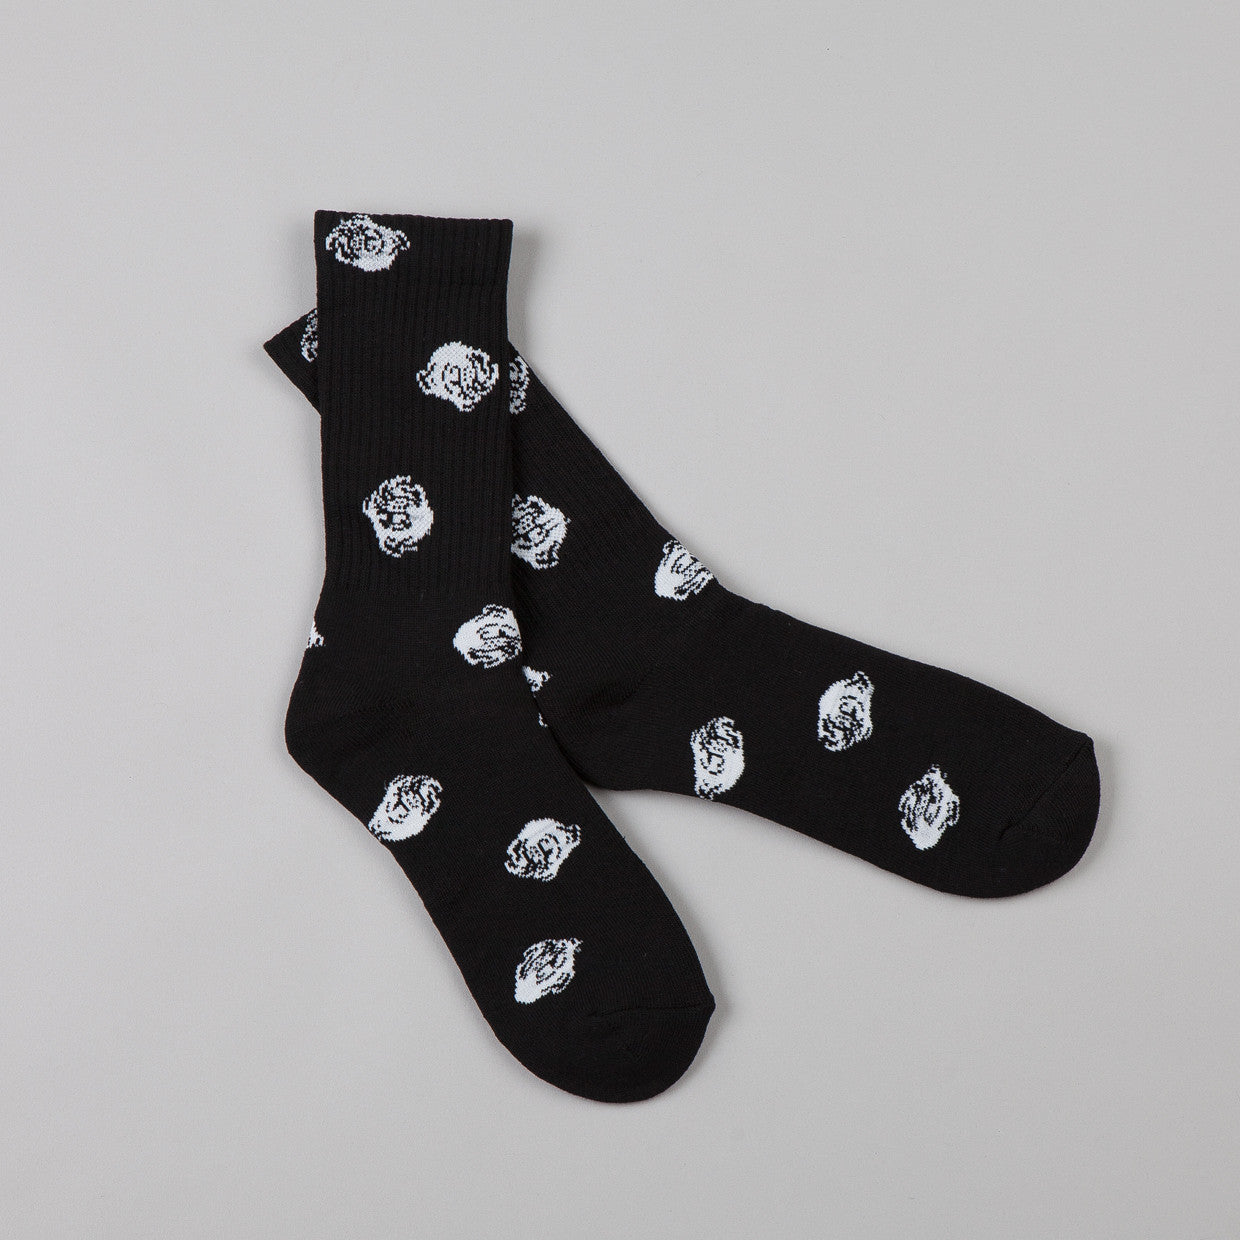 Indcsn Allover Bulldog Socks Black